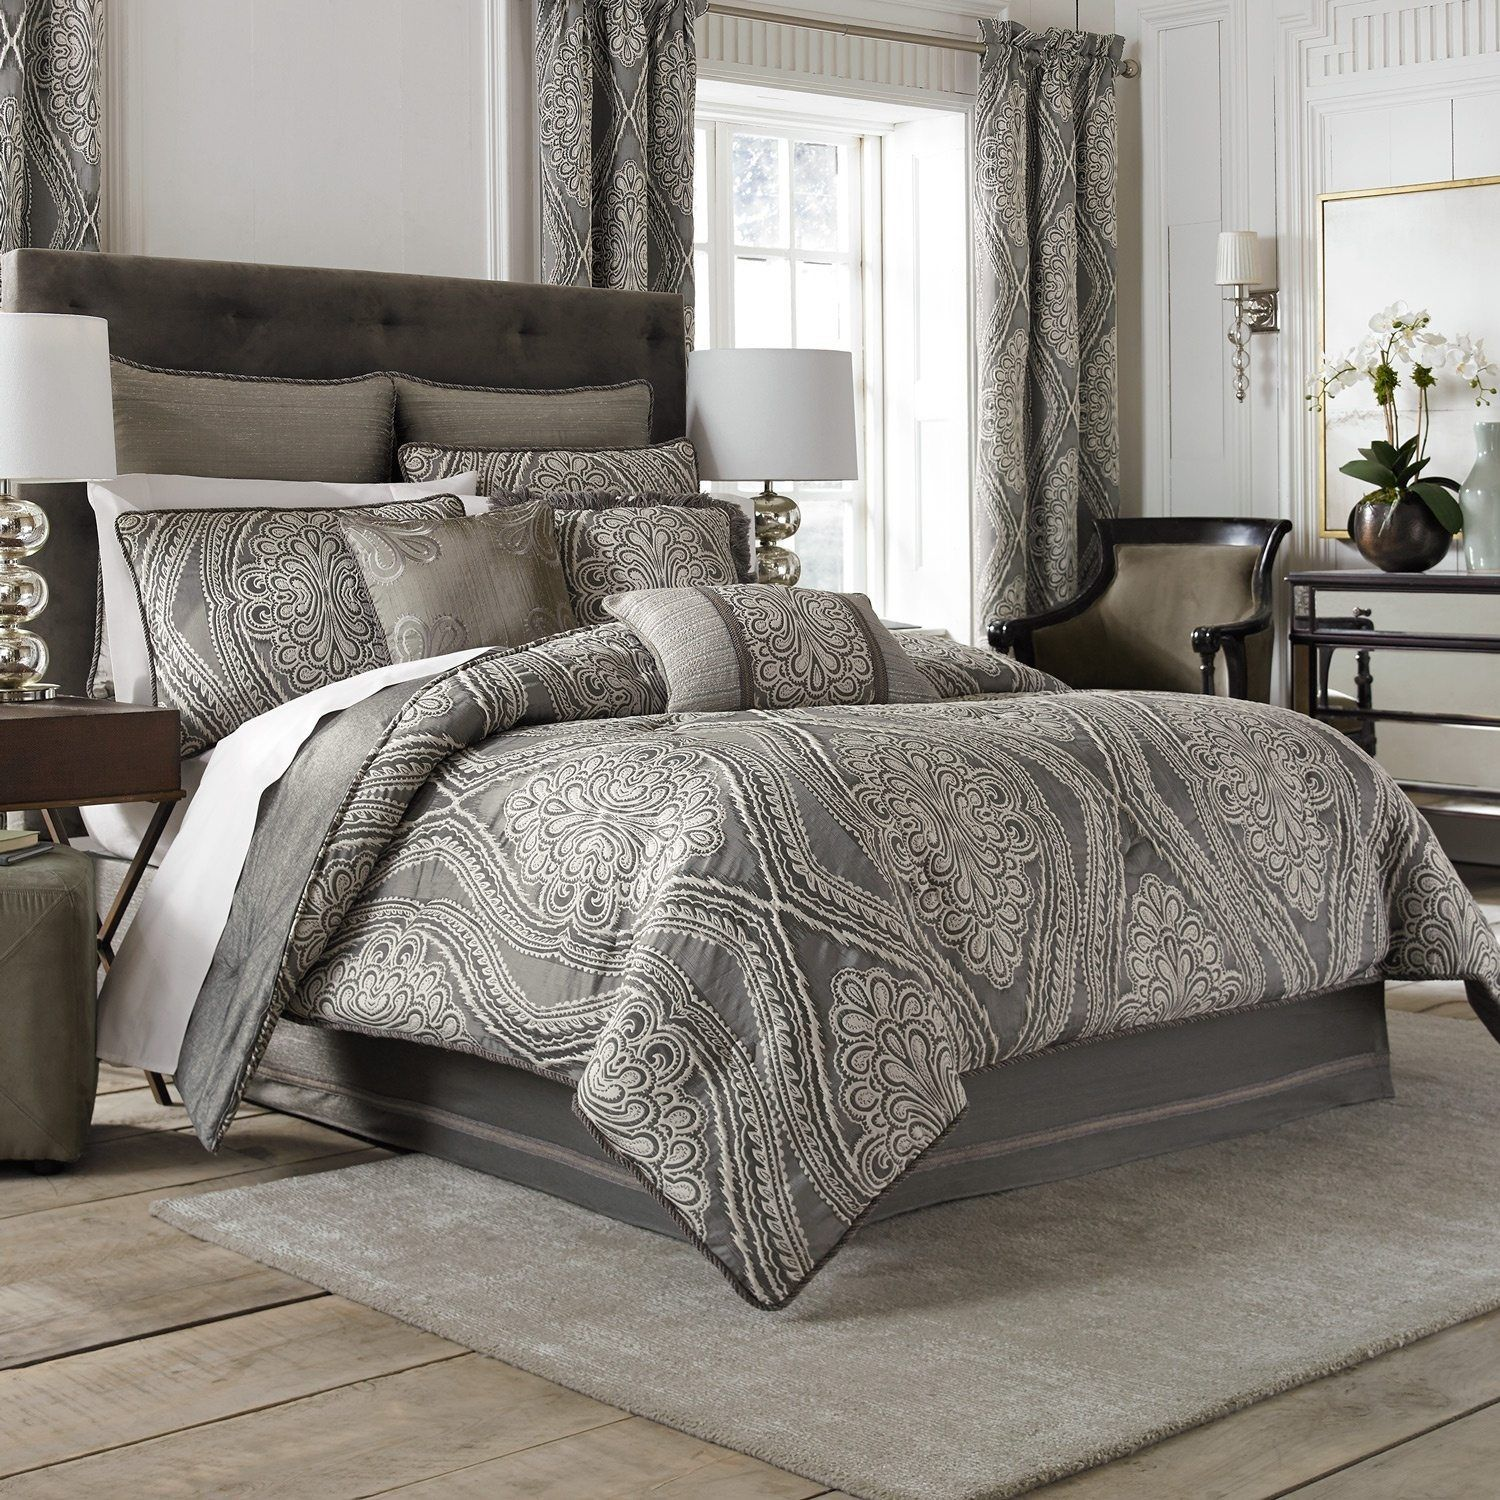 Bedroom Queen Bedding Sets With Grey Bedding Sets Queen With Brown